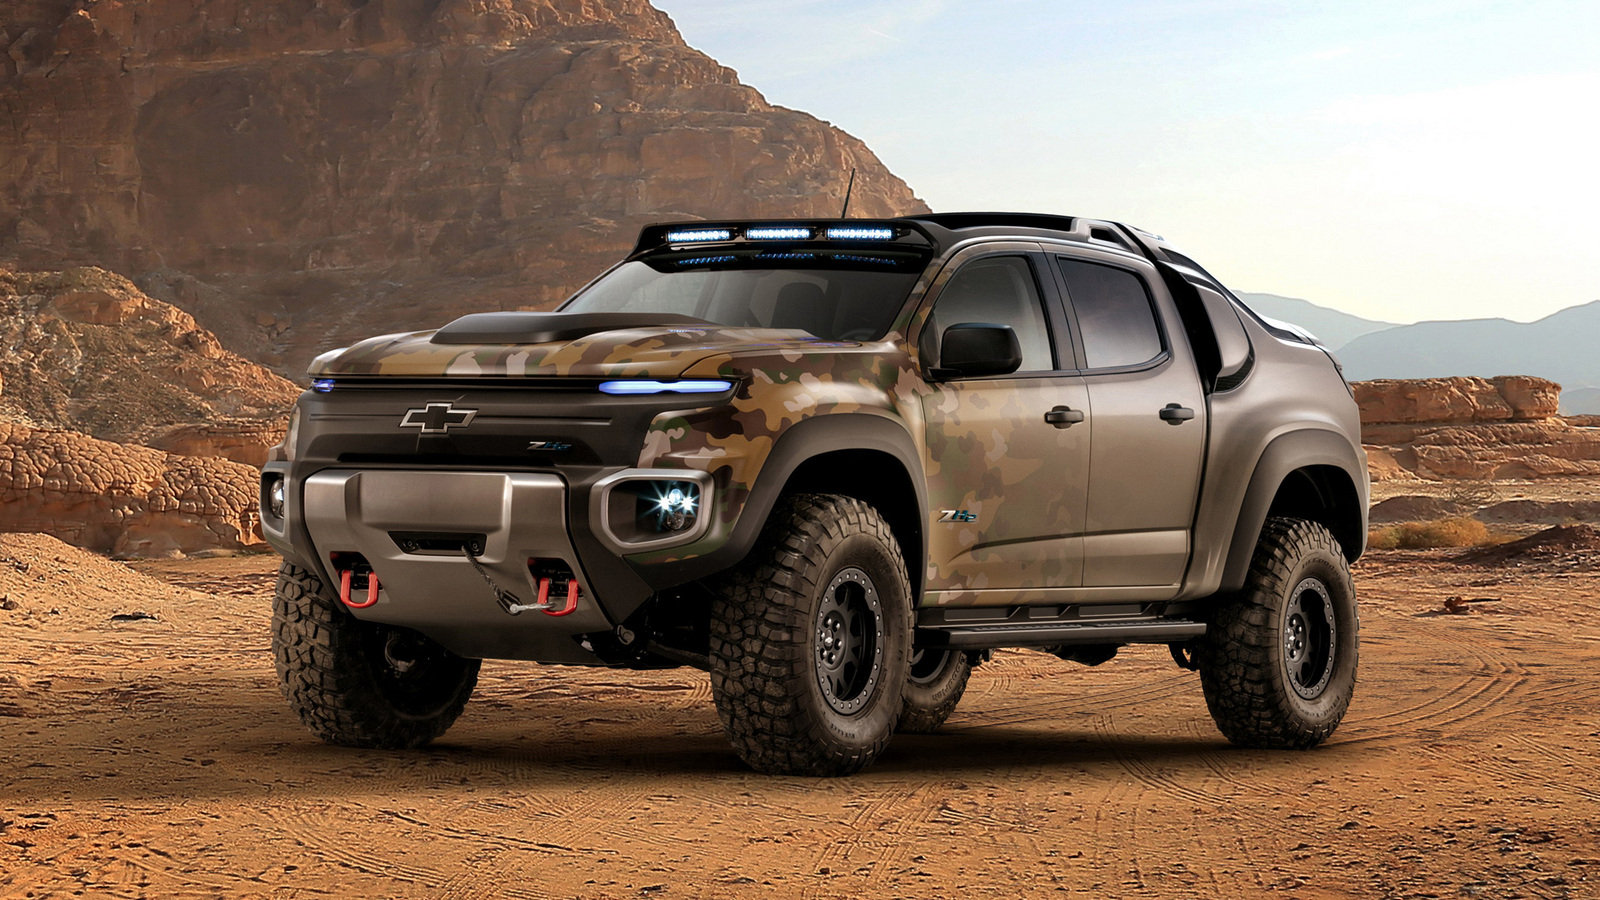 2016 chevrolet colorado zh2 picture 691017 truck review top speed. Black Bedroom Furniture Sets. Home Design Ideas